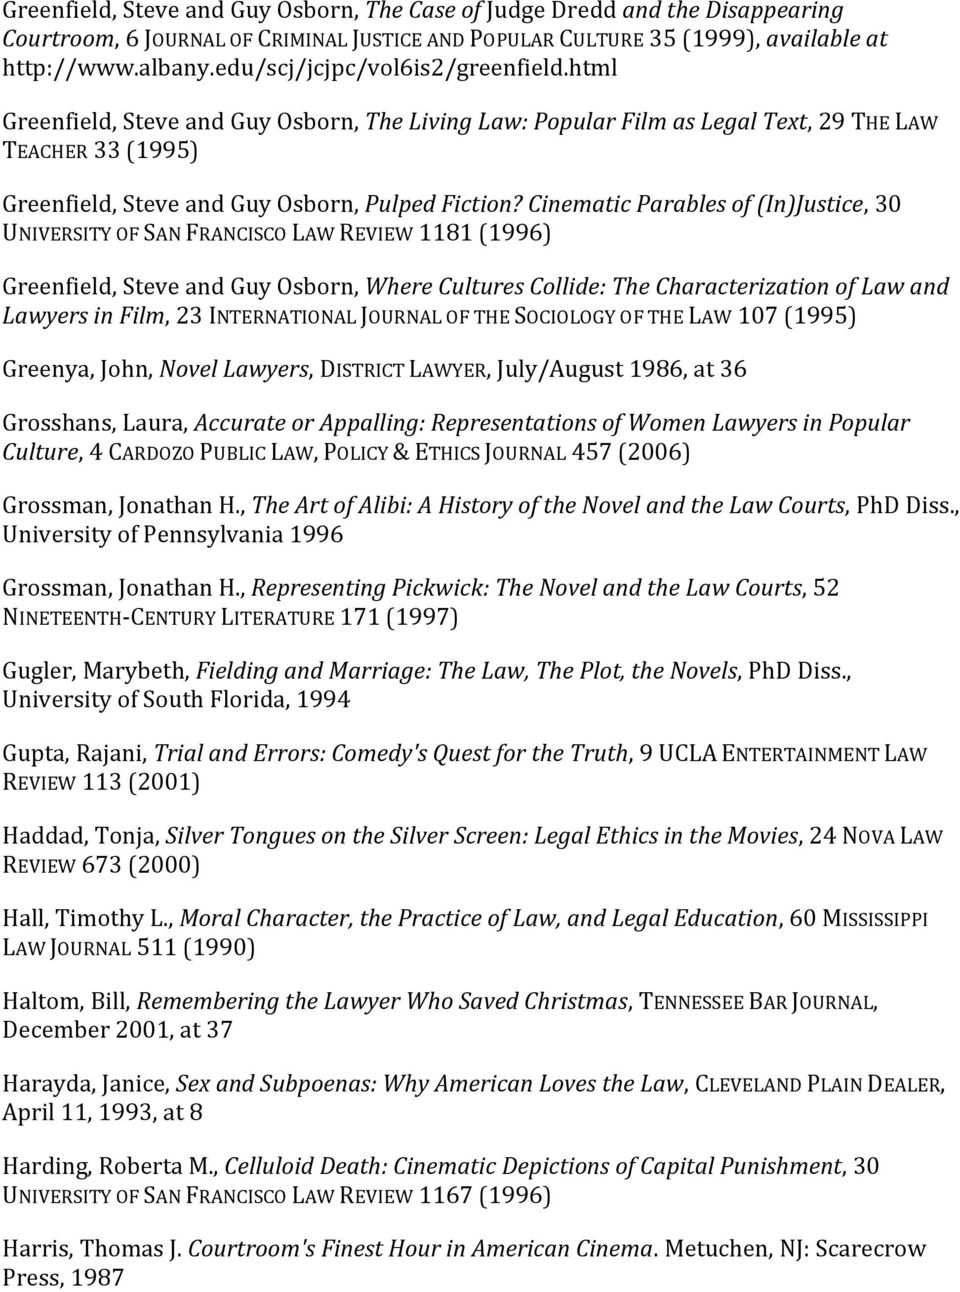 Cinematic Parables of (In)Justice, 30 UNIVERSITY OF SAN FRANCISCO LAW REVIEW 1181 (1996) Greenfield, Steve and Guy Osborn, Where Cultures Collide: The Characterization of Law and Lawyers in Film, 23